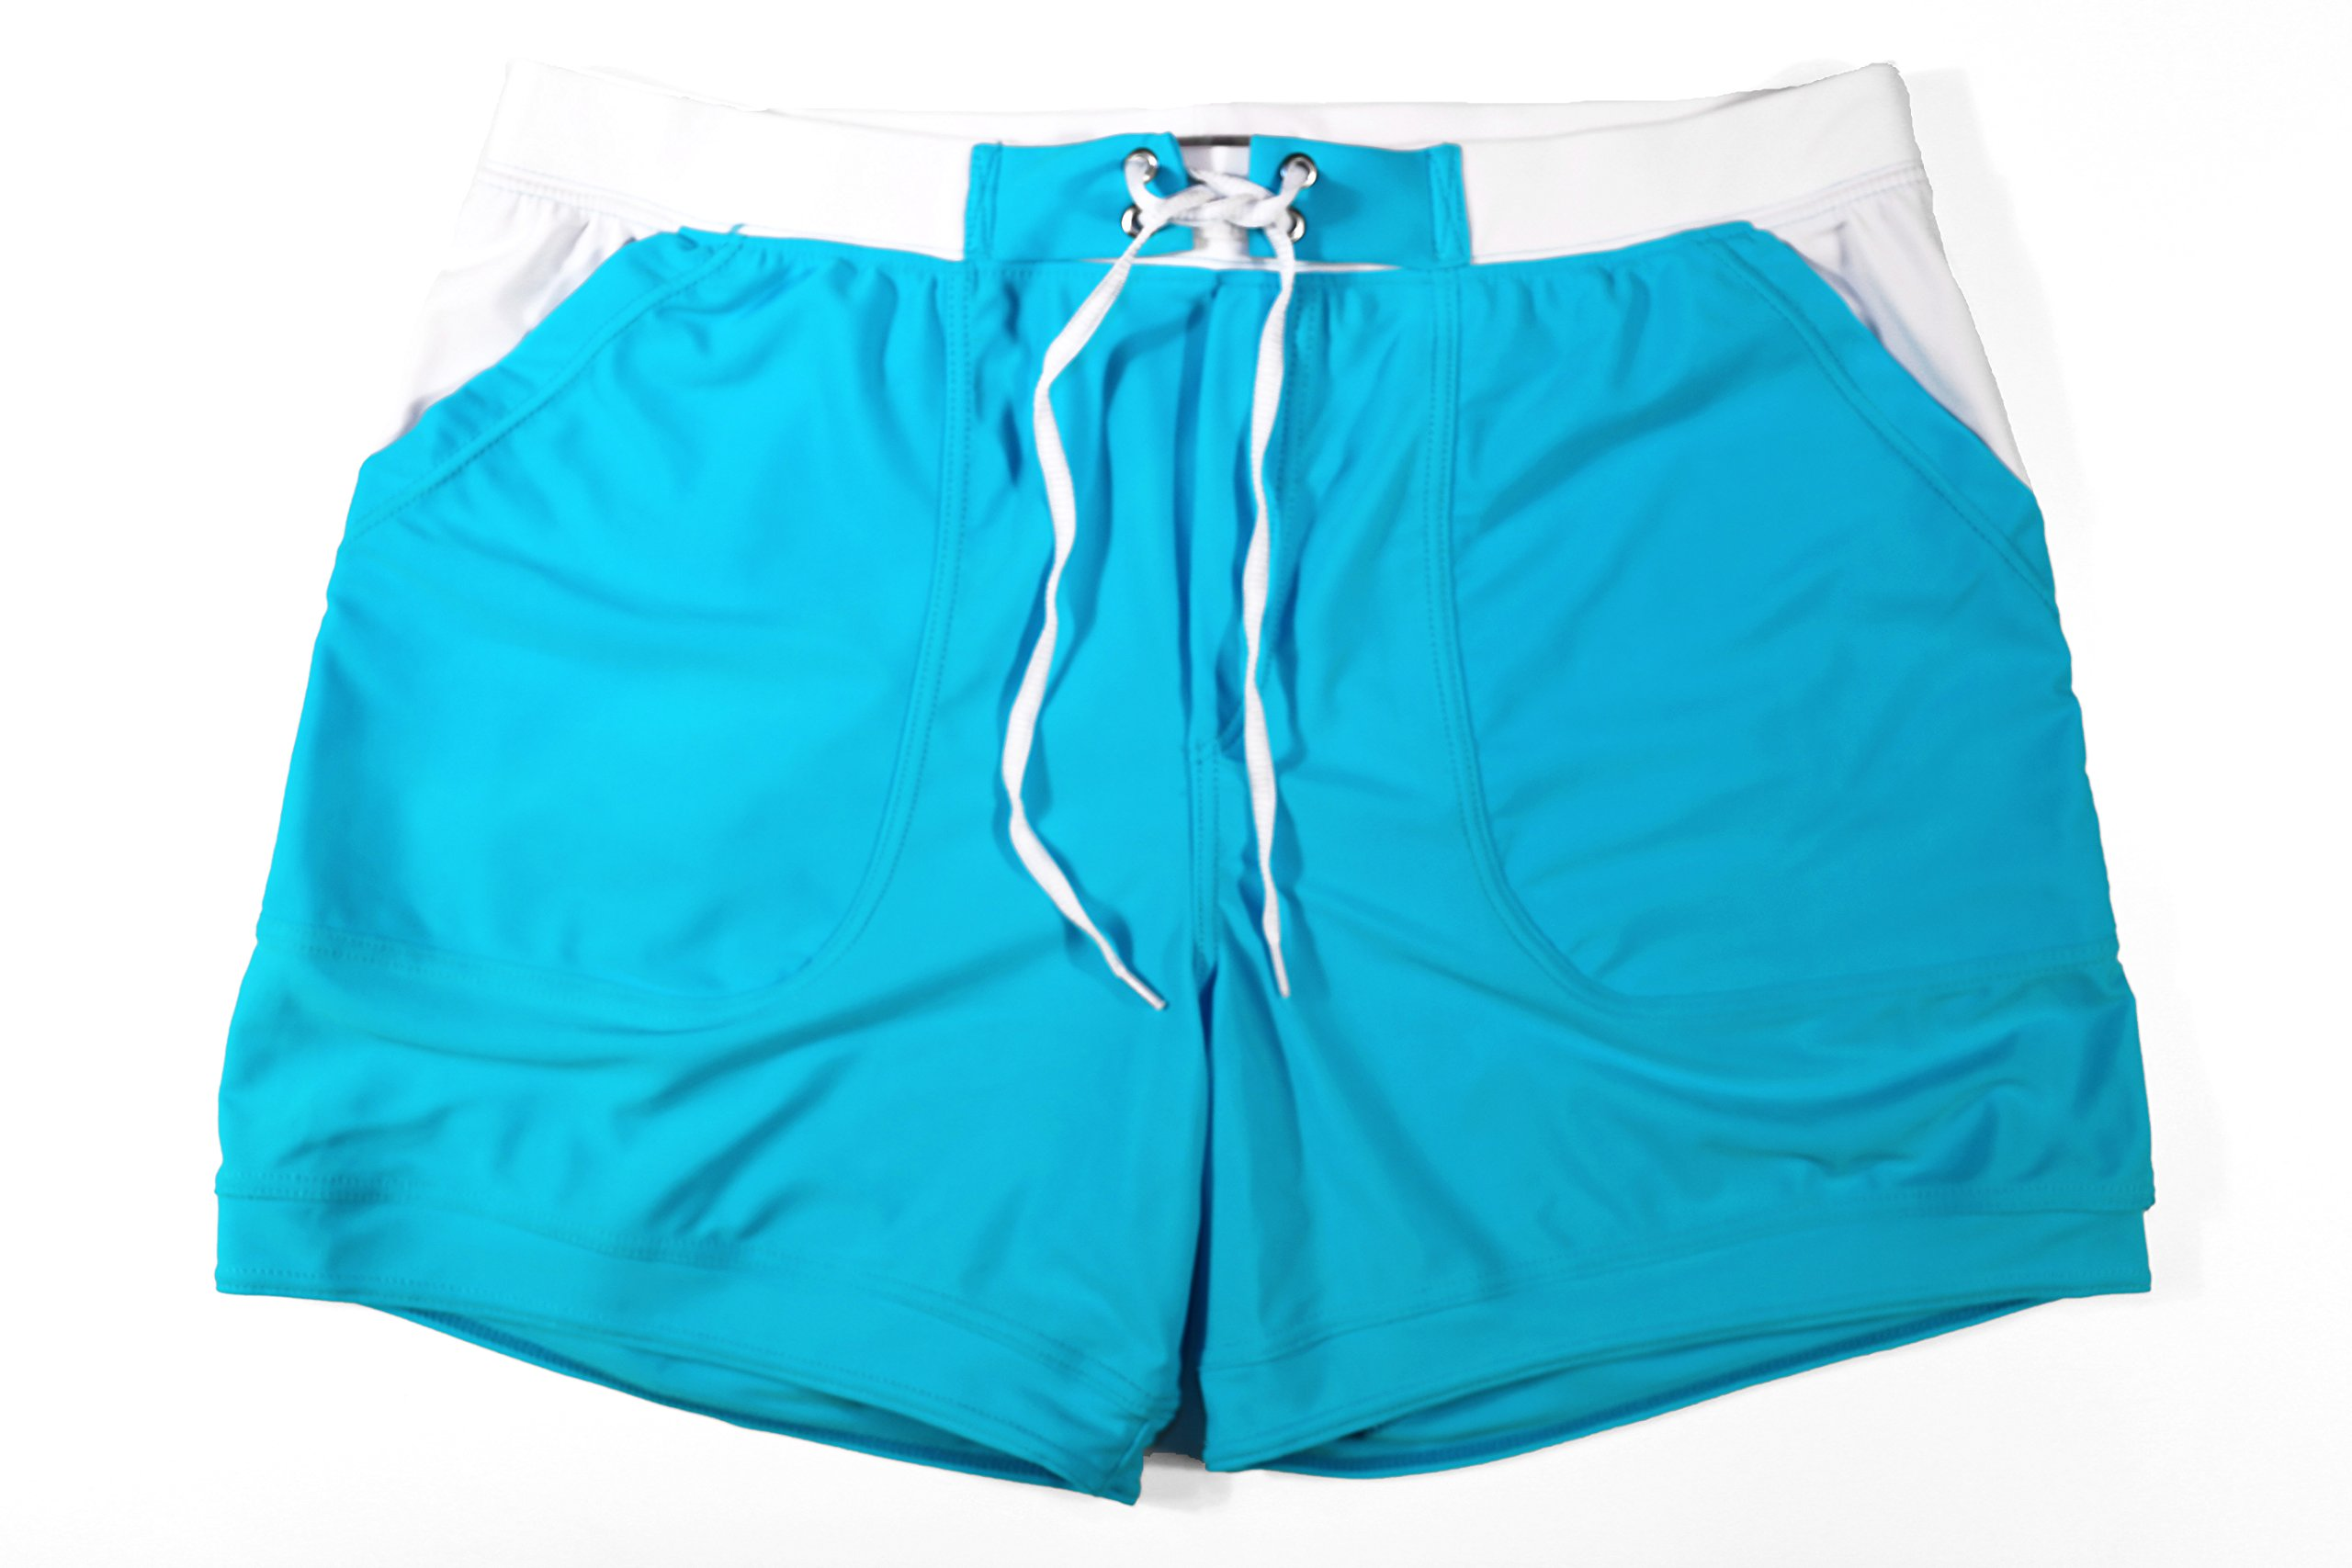 e498a2c4cc Taddlee Men Swimwear Solid Basic Long Swim Boxer Trunks Board Shorts  Swimsuits, Blue, Small - 4331231914 < Briefs < Clothing, Shoes & Jewelry -  tibs